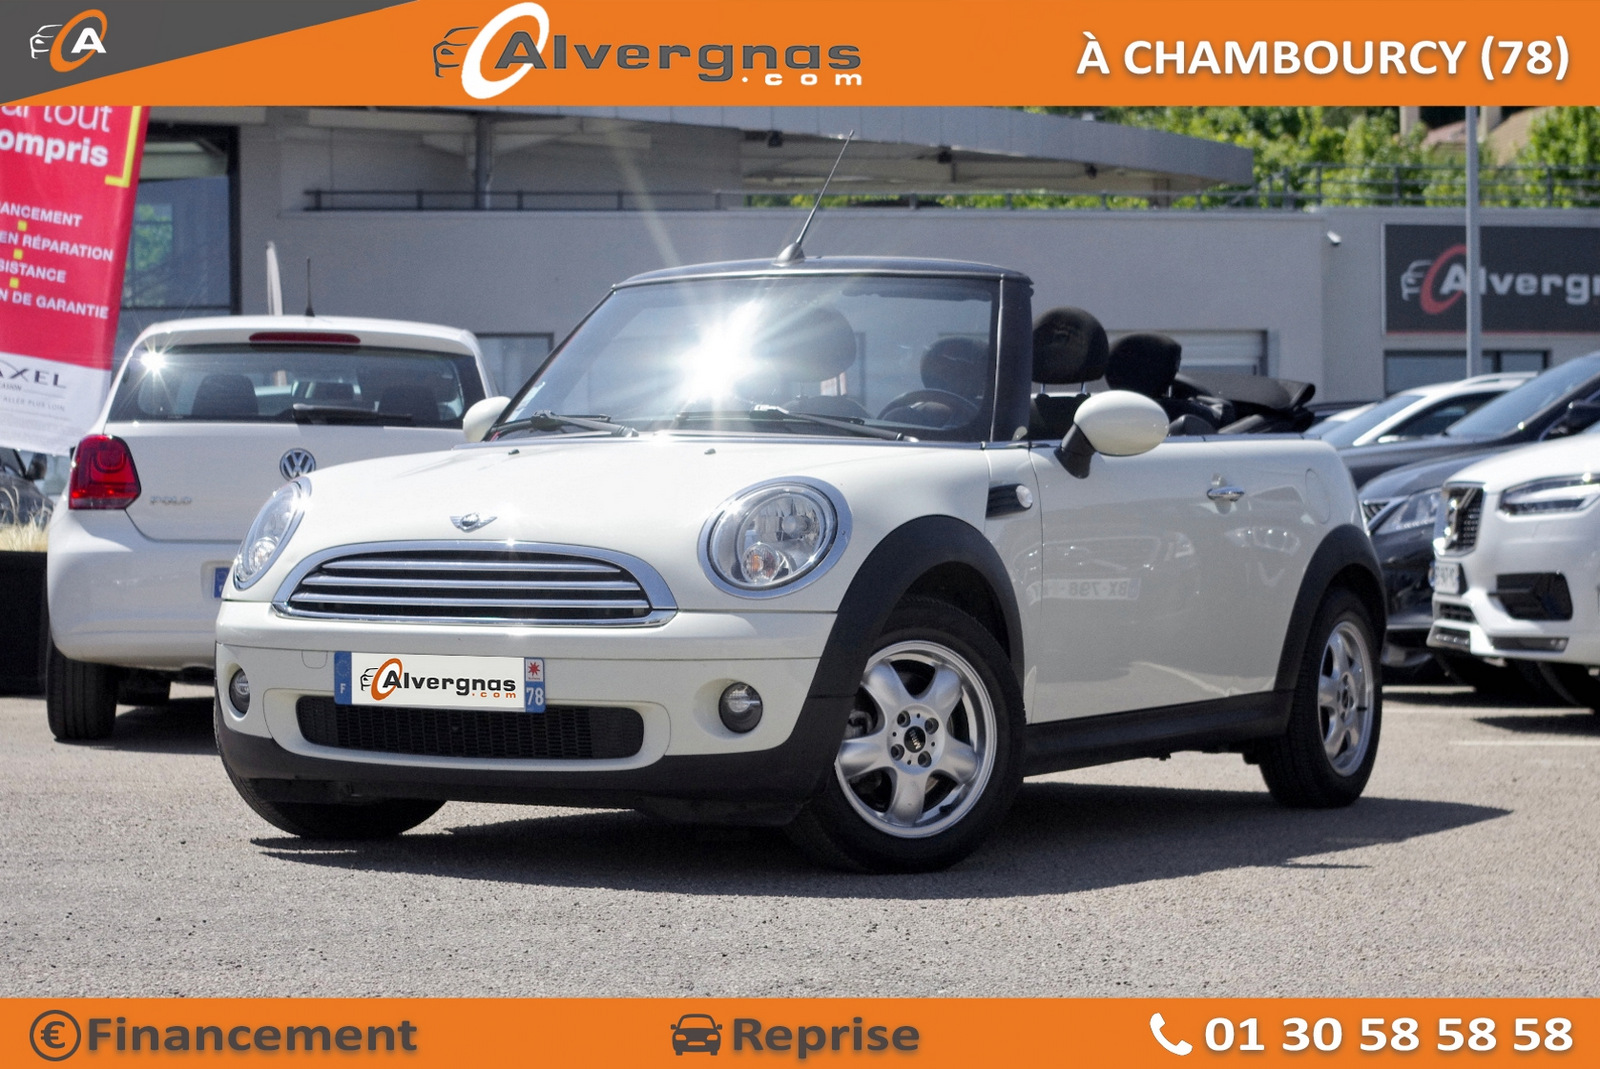 MINI MINI CABRIOLET d'occasion sur Paris